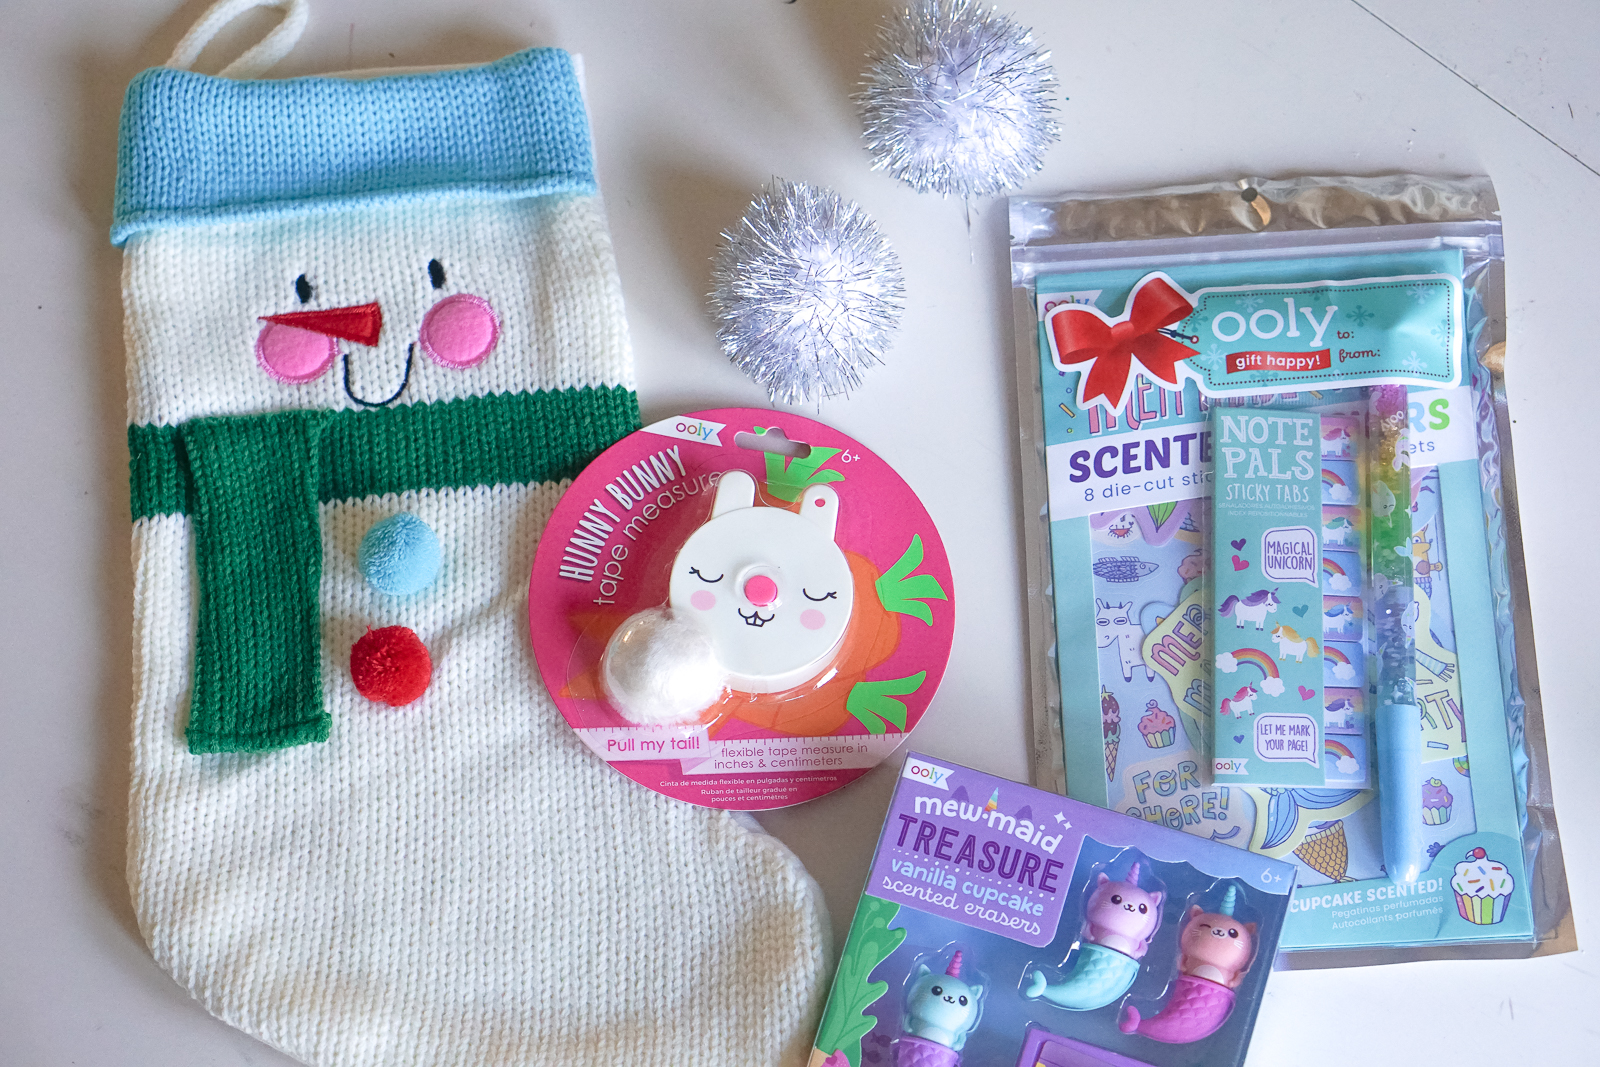 Creative Stocking Stuffers for Kids - OOLY Gifts for Girls and Boys